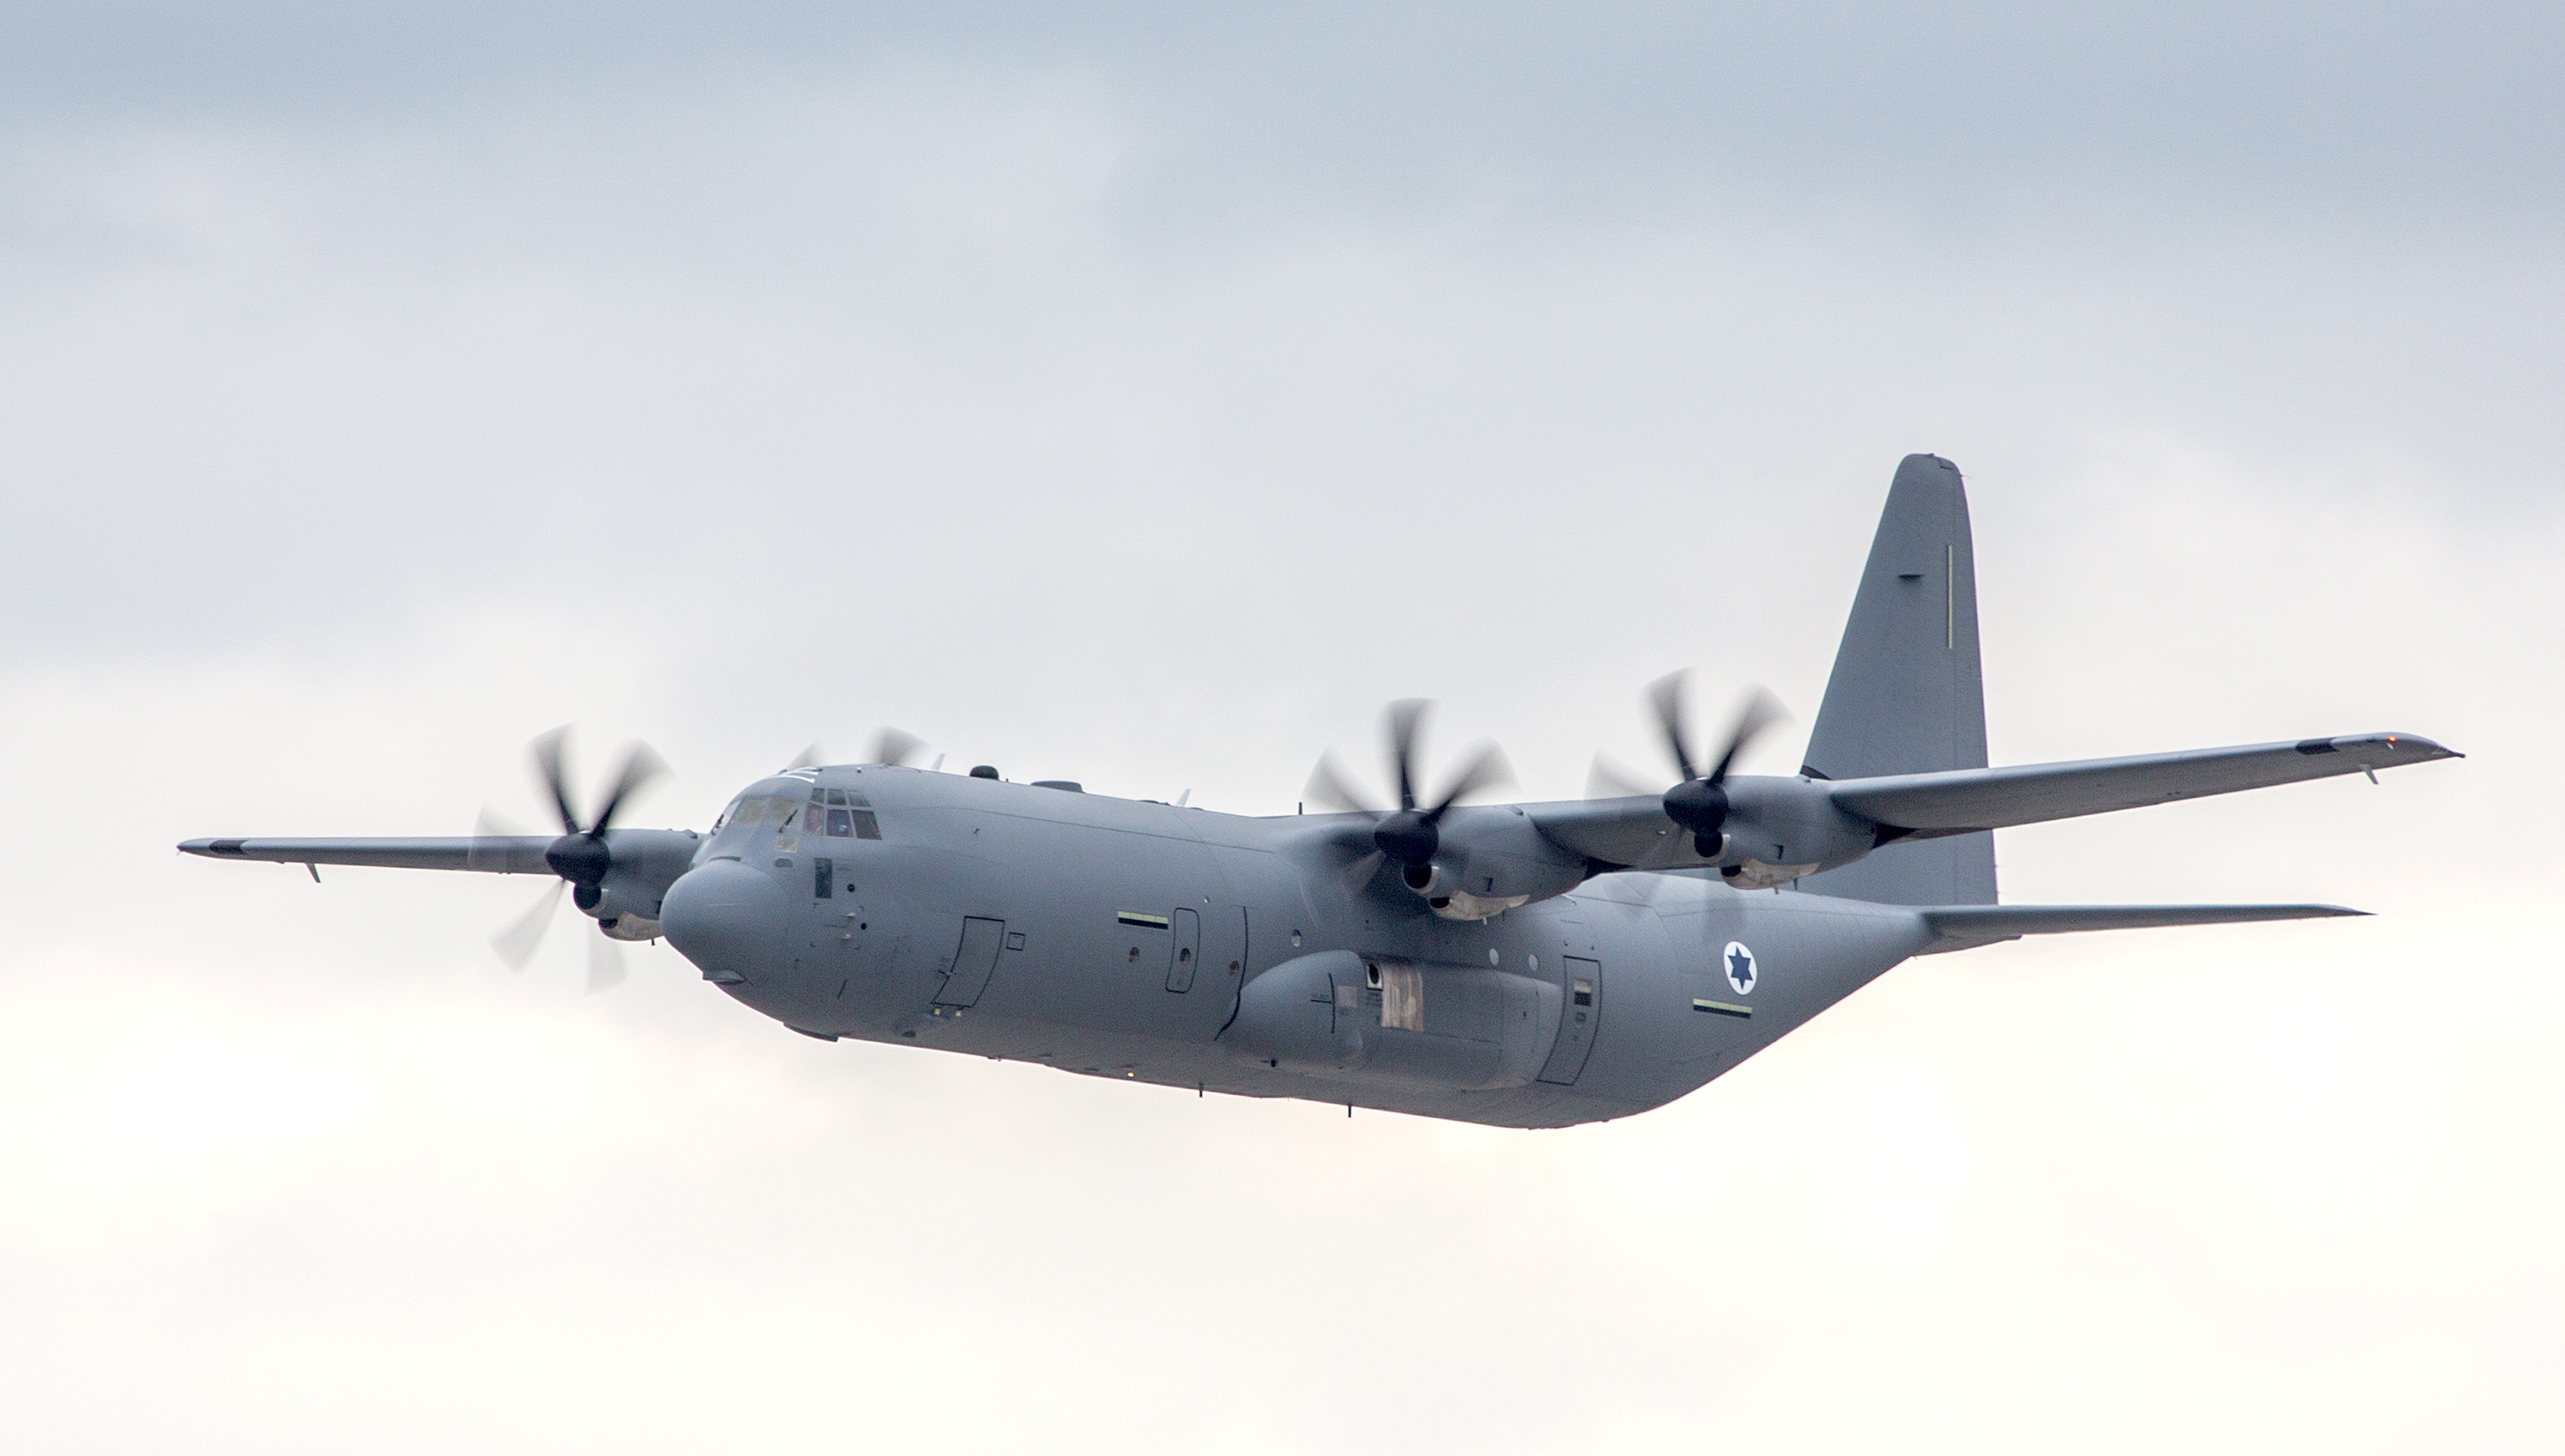 c 130 Oxley group are manufacturers and specialists of lighting applications and systems of an lockheed c-130 hercules military transport aircraft our lighting for the c-130 include the led taxi light, led landing light, led navigation lights, led mini floodlight, ir formation lights and emc filters.